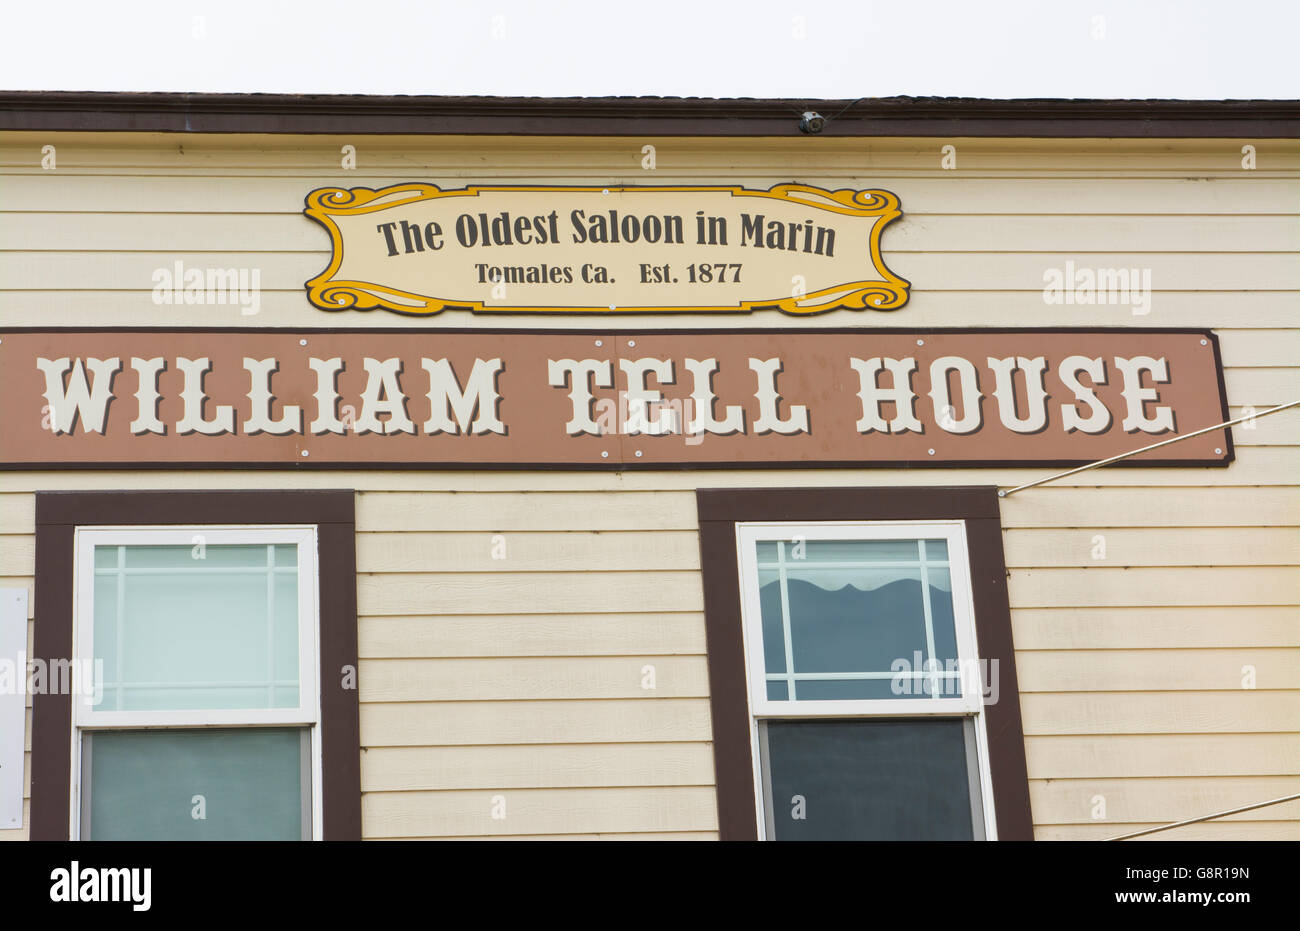 Tomales California on PCH #1 at the William Tell House the oldest saloon in Marin County  1877 founded small town - Stock Image